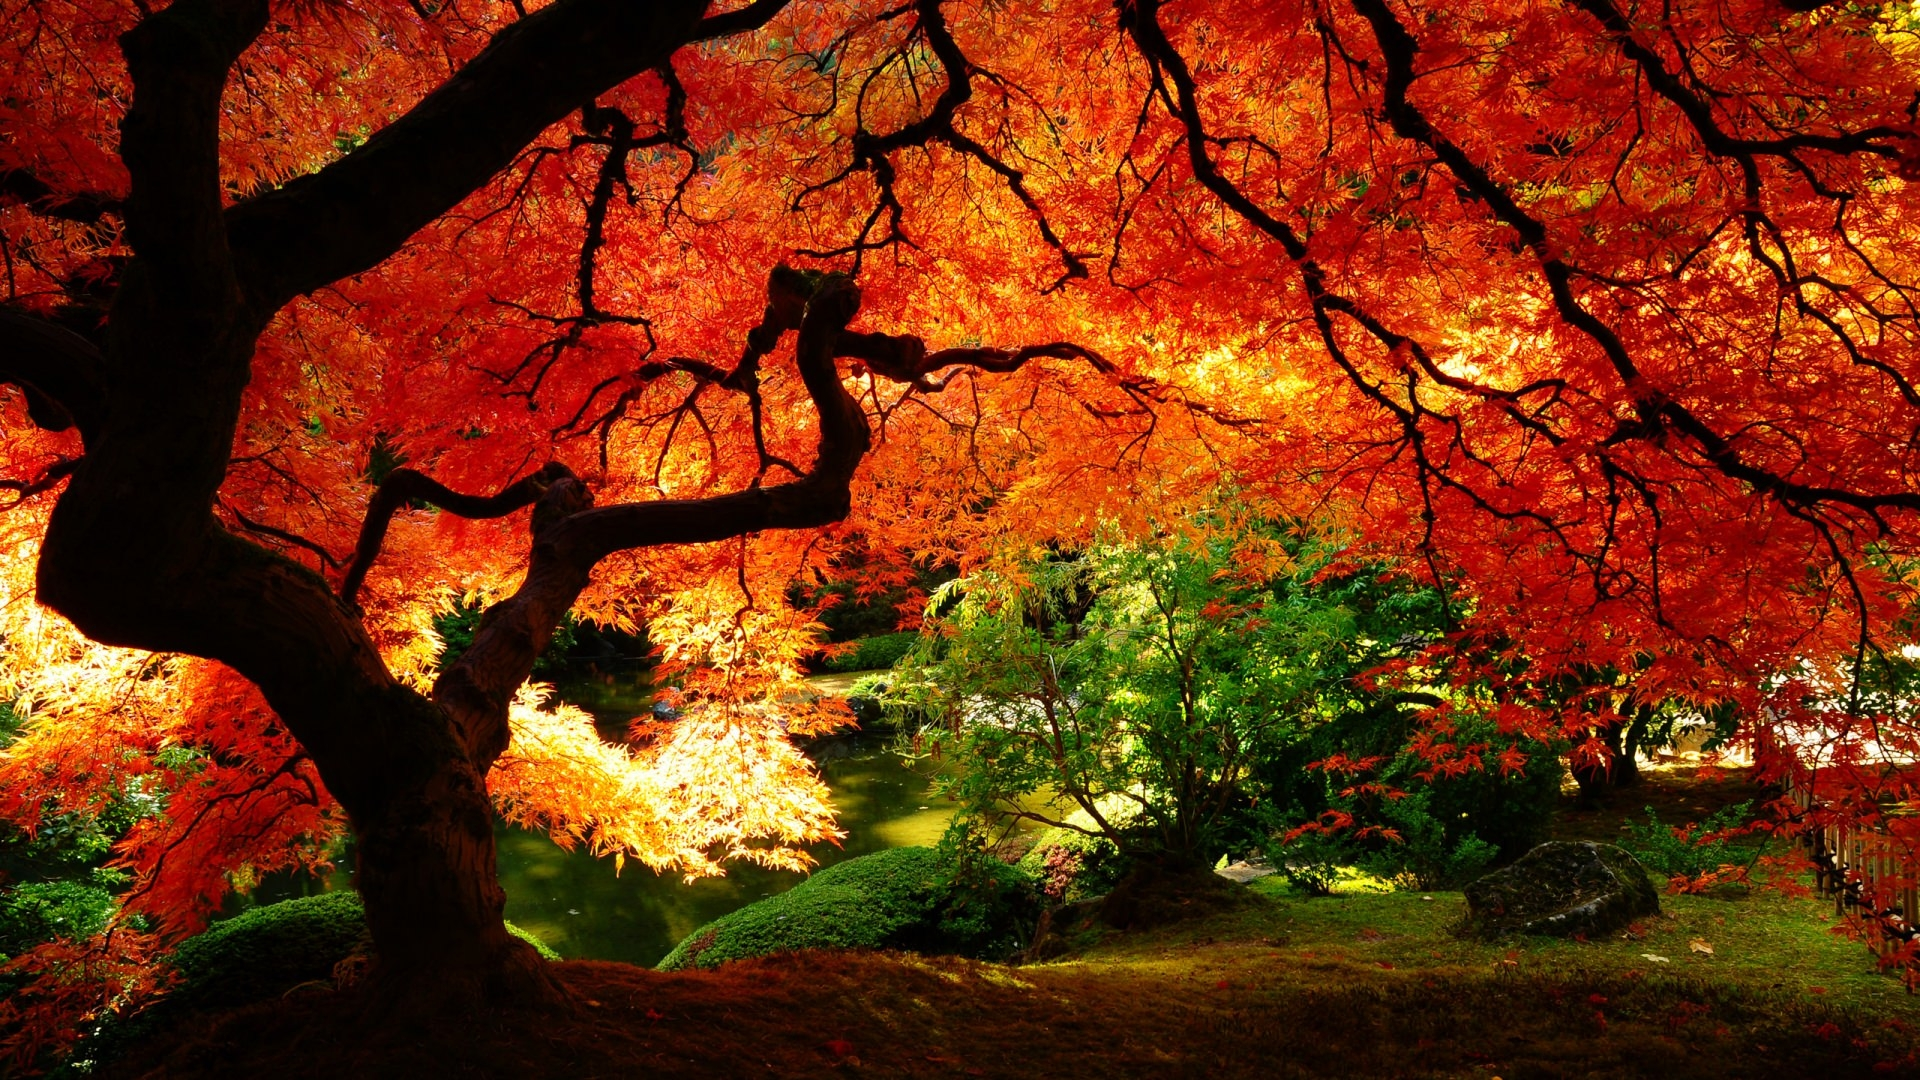 20 fall wallpapers backgrounds images freecreatives